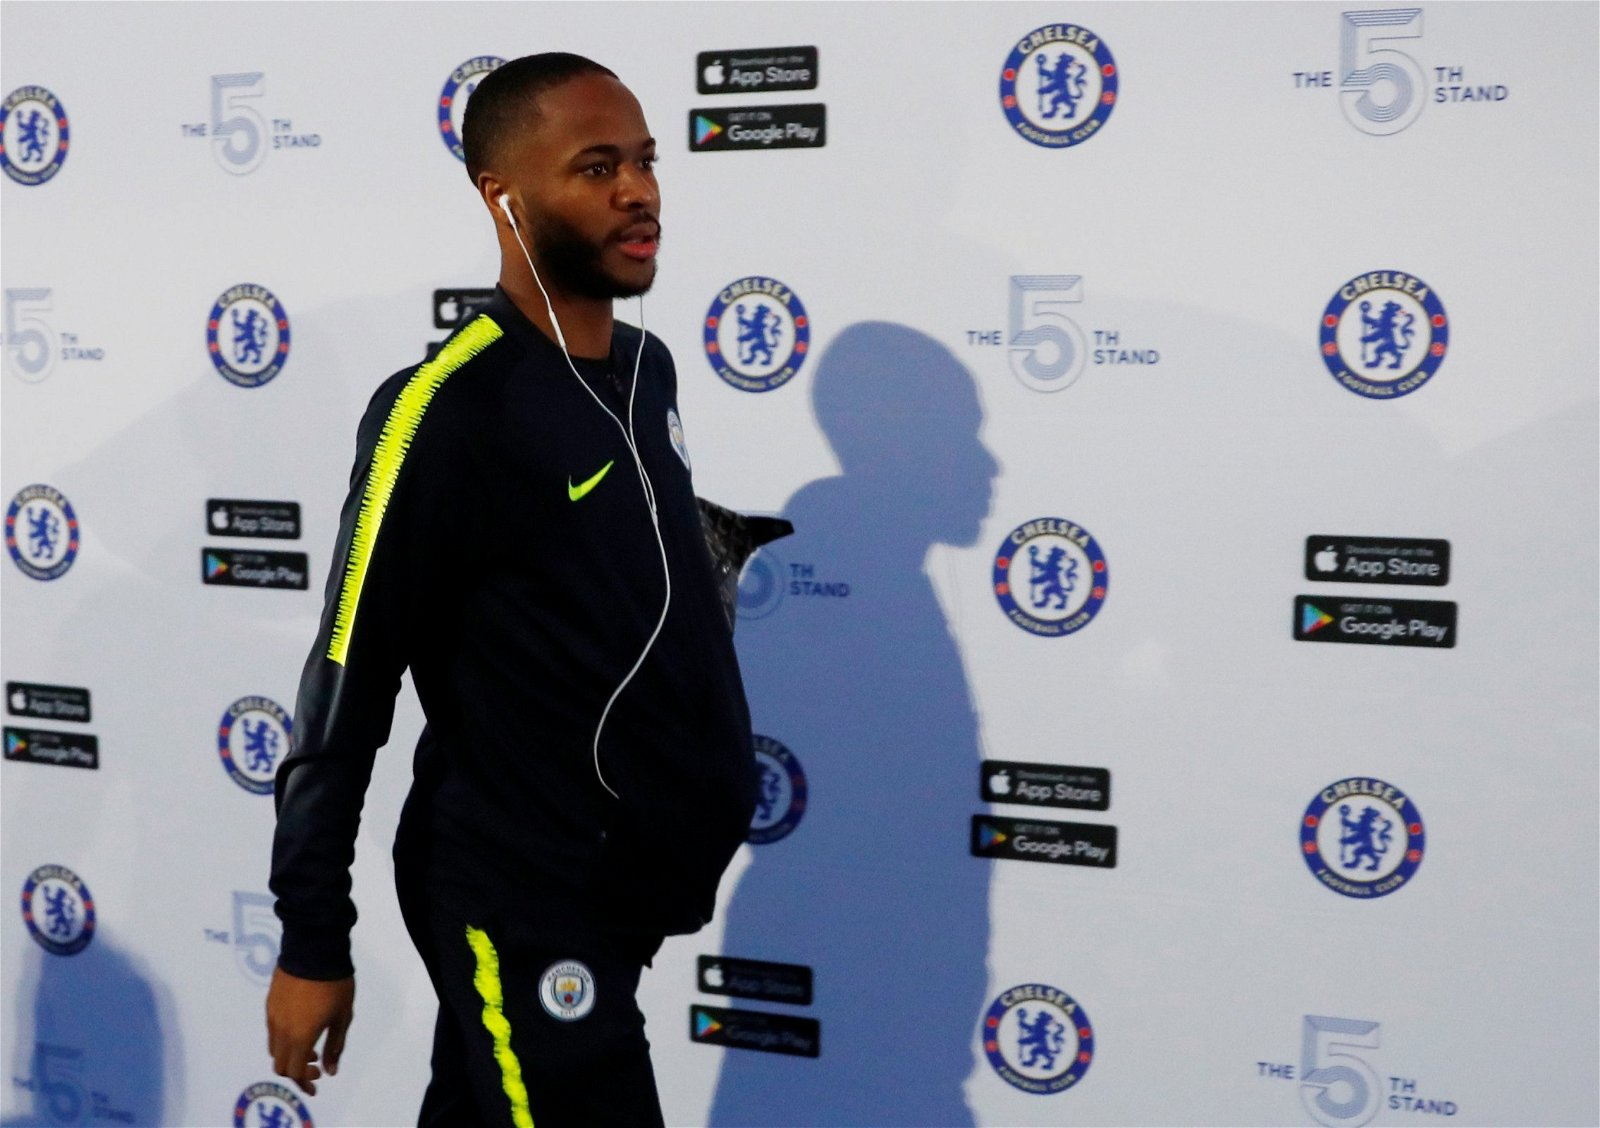 Why did it take journalists so long to speak out against the media's witch-hunt of Raheem Sterling?